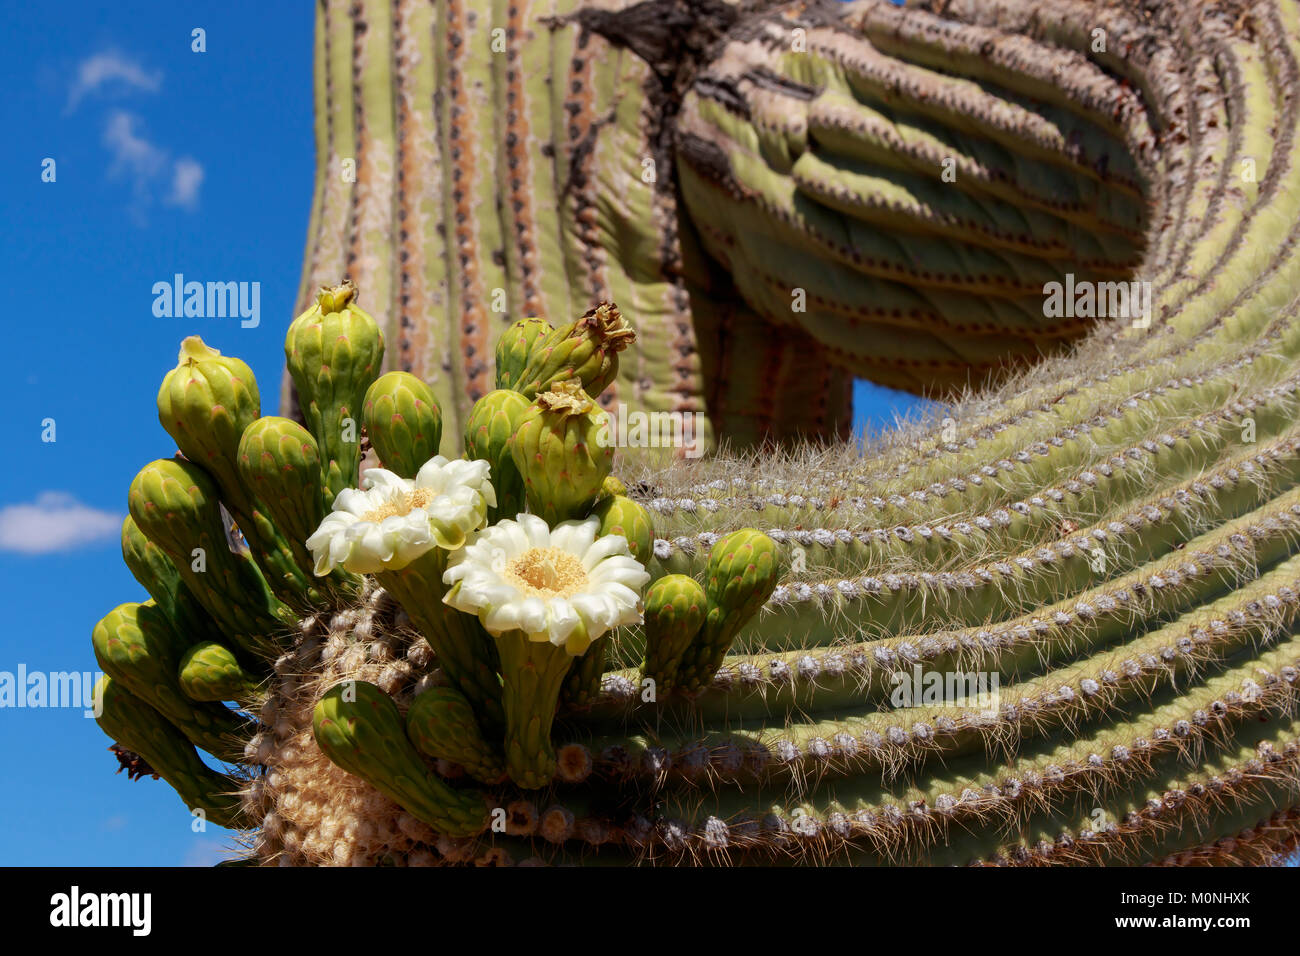 Close Up Of Saguaro Cactus In Bloom With White Flowers And Blue Sky